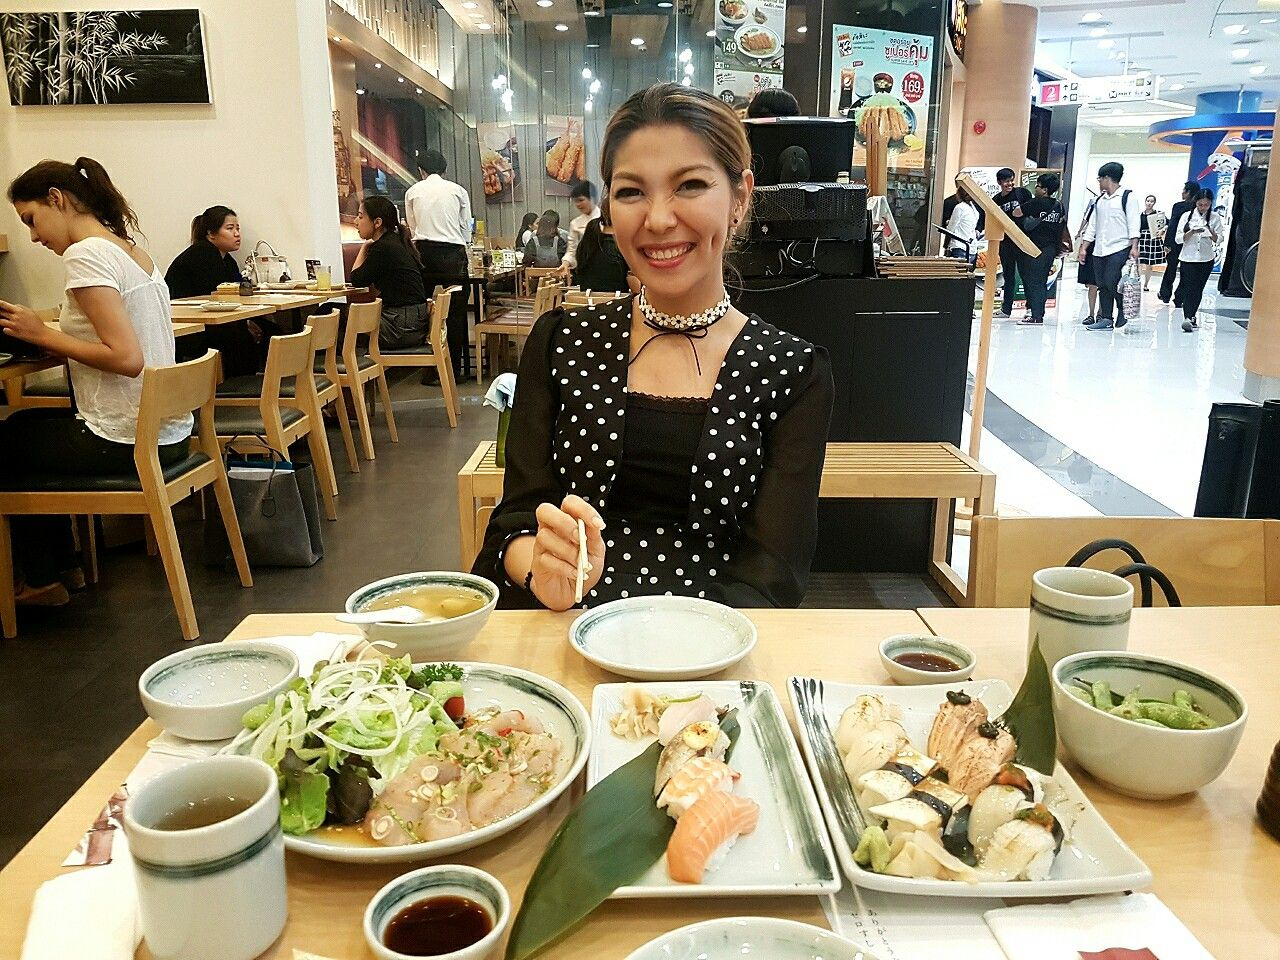 Another wonderful night for me..  Met my lovely mom  Ate yummy dinner Attended biz opportunity session  Met my full of passion Nu Skin team Got a stylish watch.. love it! Got fried pork and sticky rice from P'Nik (she always remember what I like!)  #สมาคมลูกกตัญญู #LansEatOut #ZeroSushi #ธุรกิจเครือข่ายสีขาว